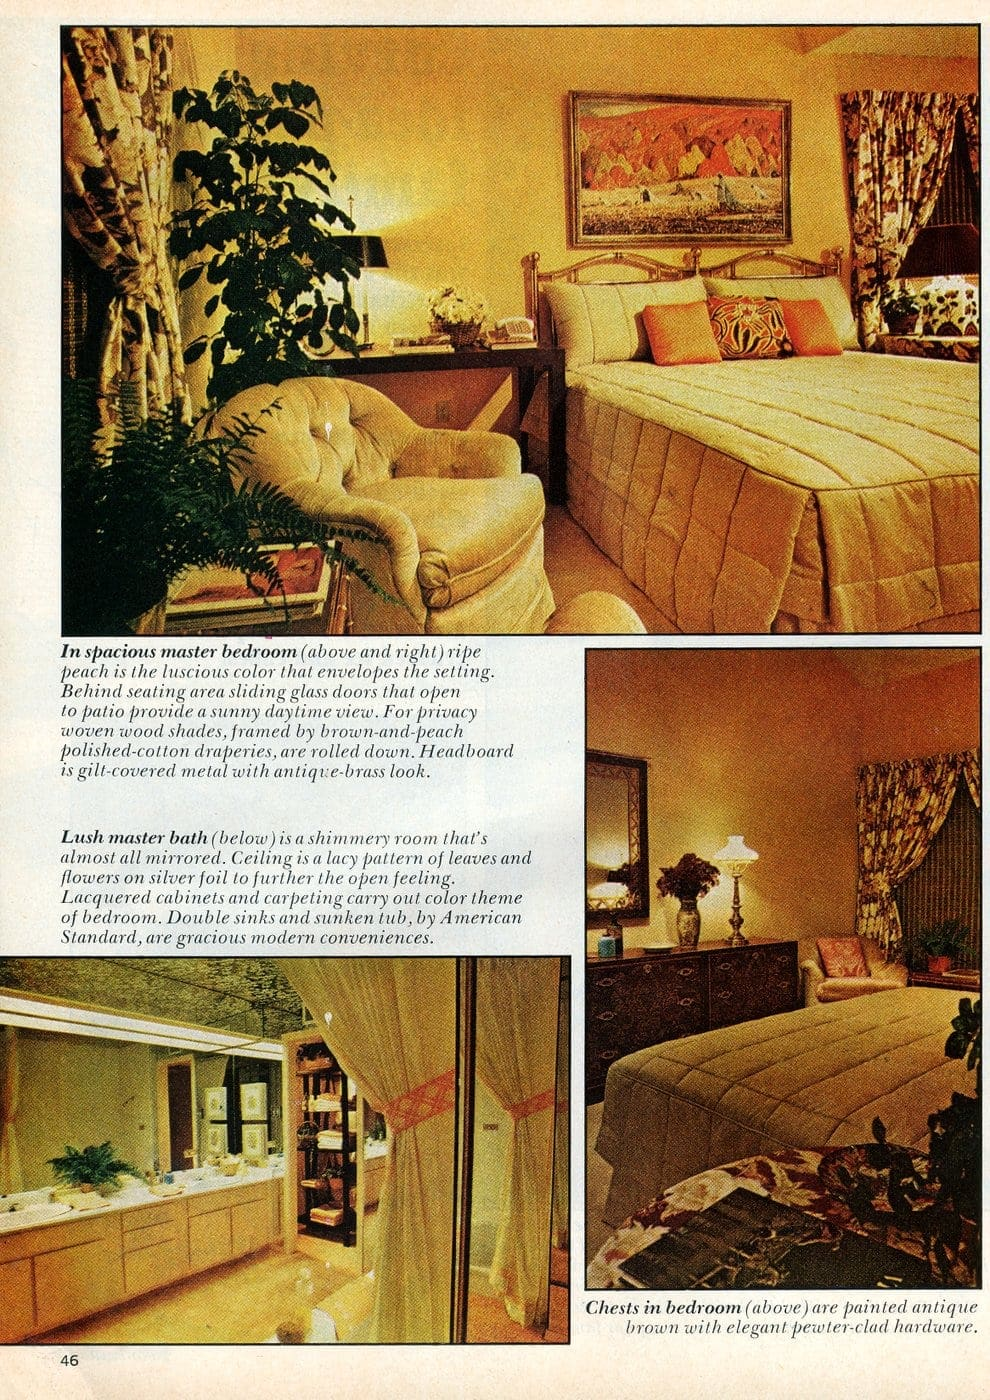 Beautiful practical 1975 model home - The master bedroom